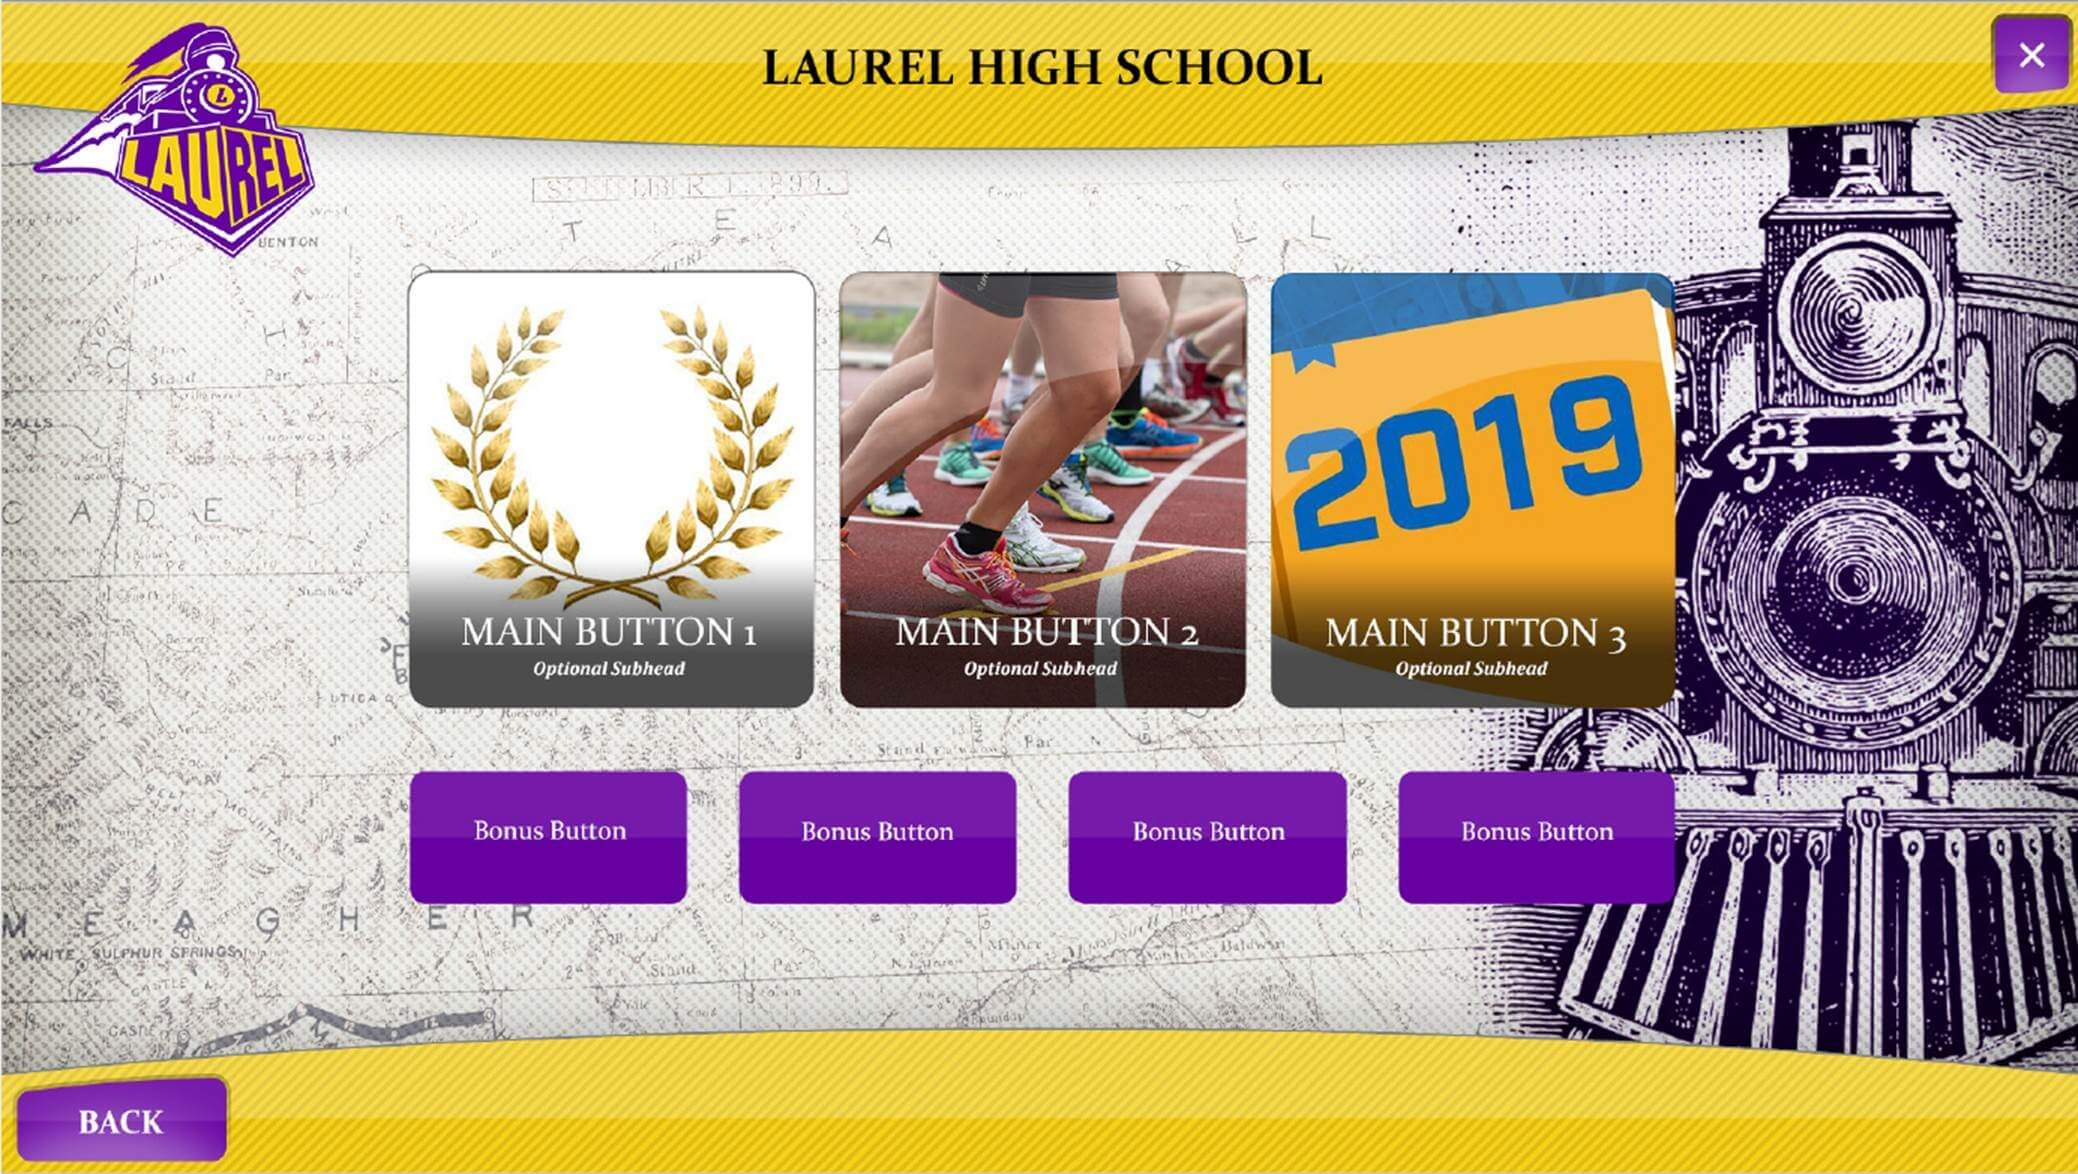 Laurel High School interactive digital signage example